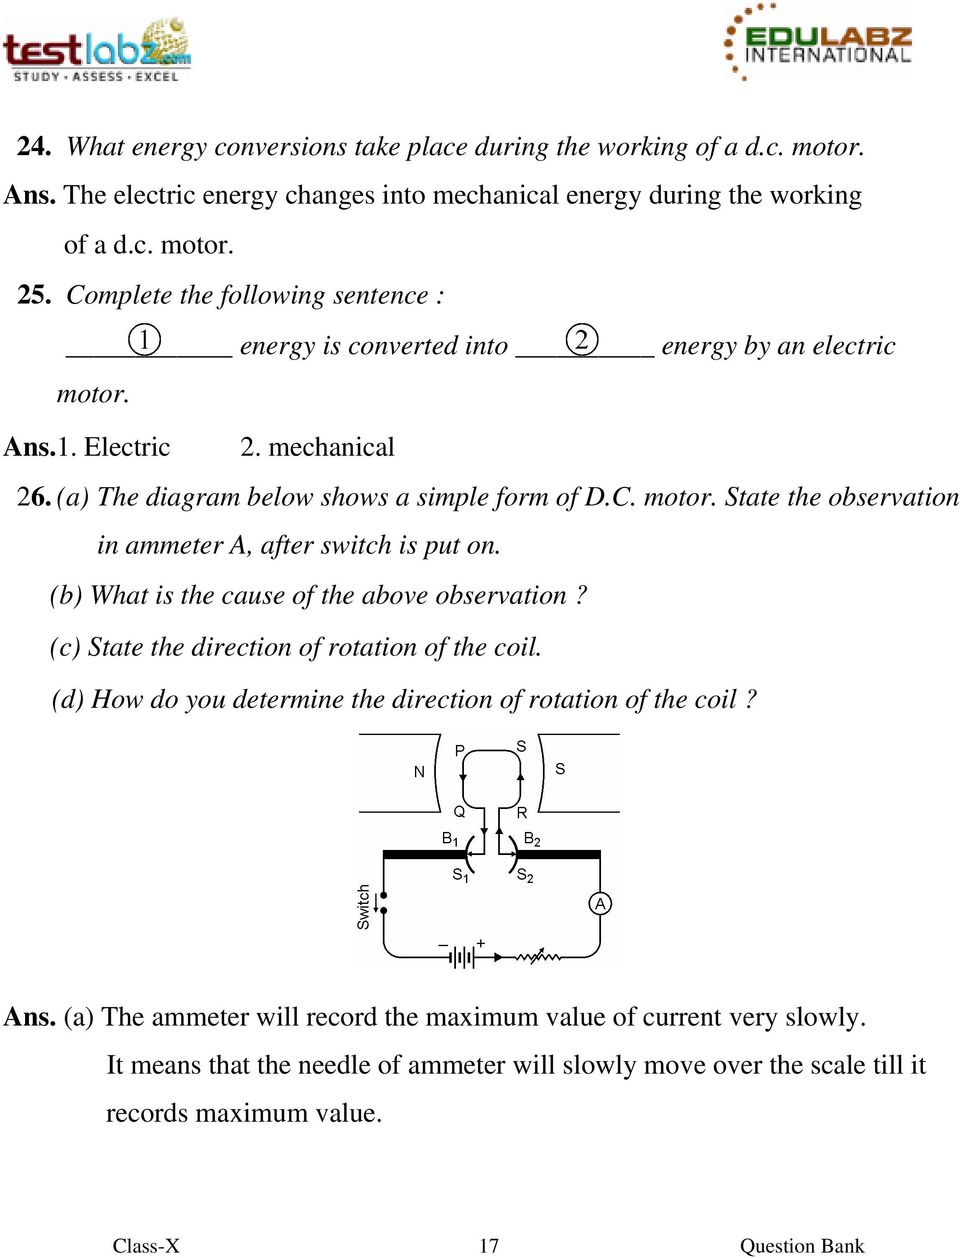 (b) What is the cause of the above observation? (c) State the direction of rotation of the coil. (d) How do you determine the direction of rotation of the coil? Ans.